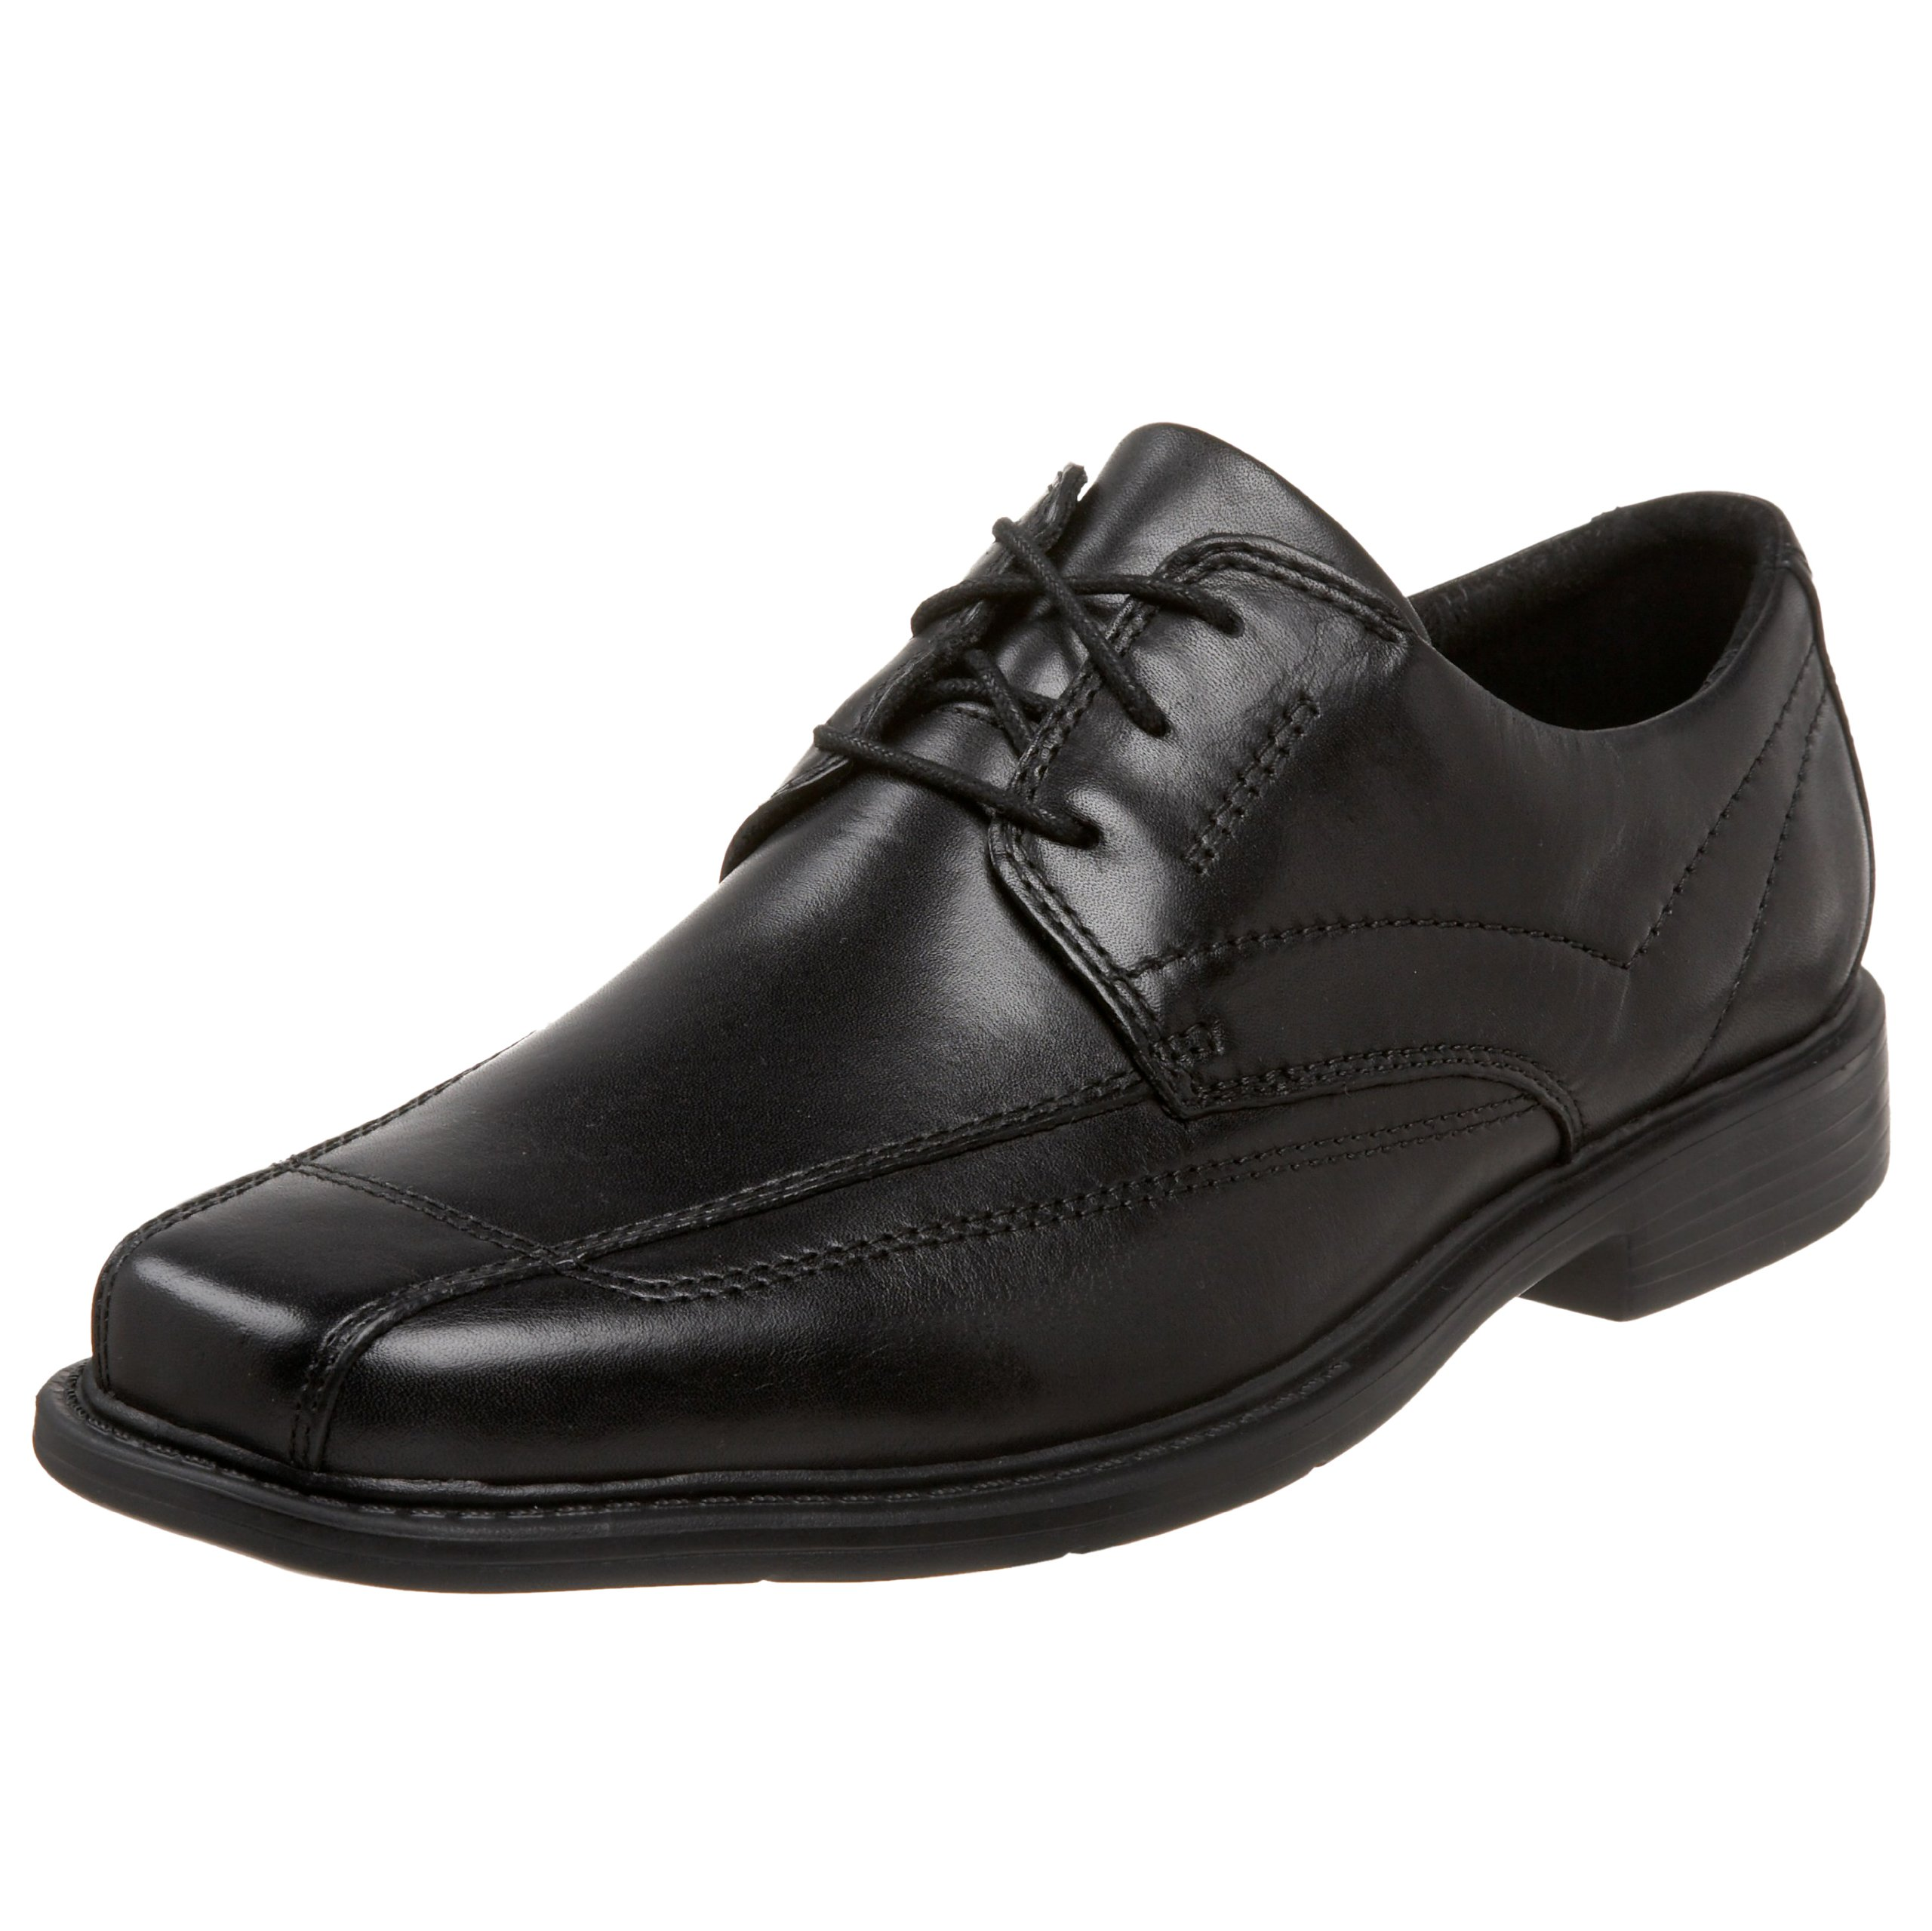 Clarks Men's Newmann Oxford